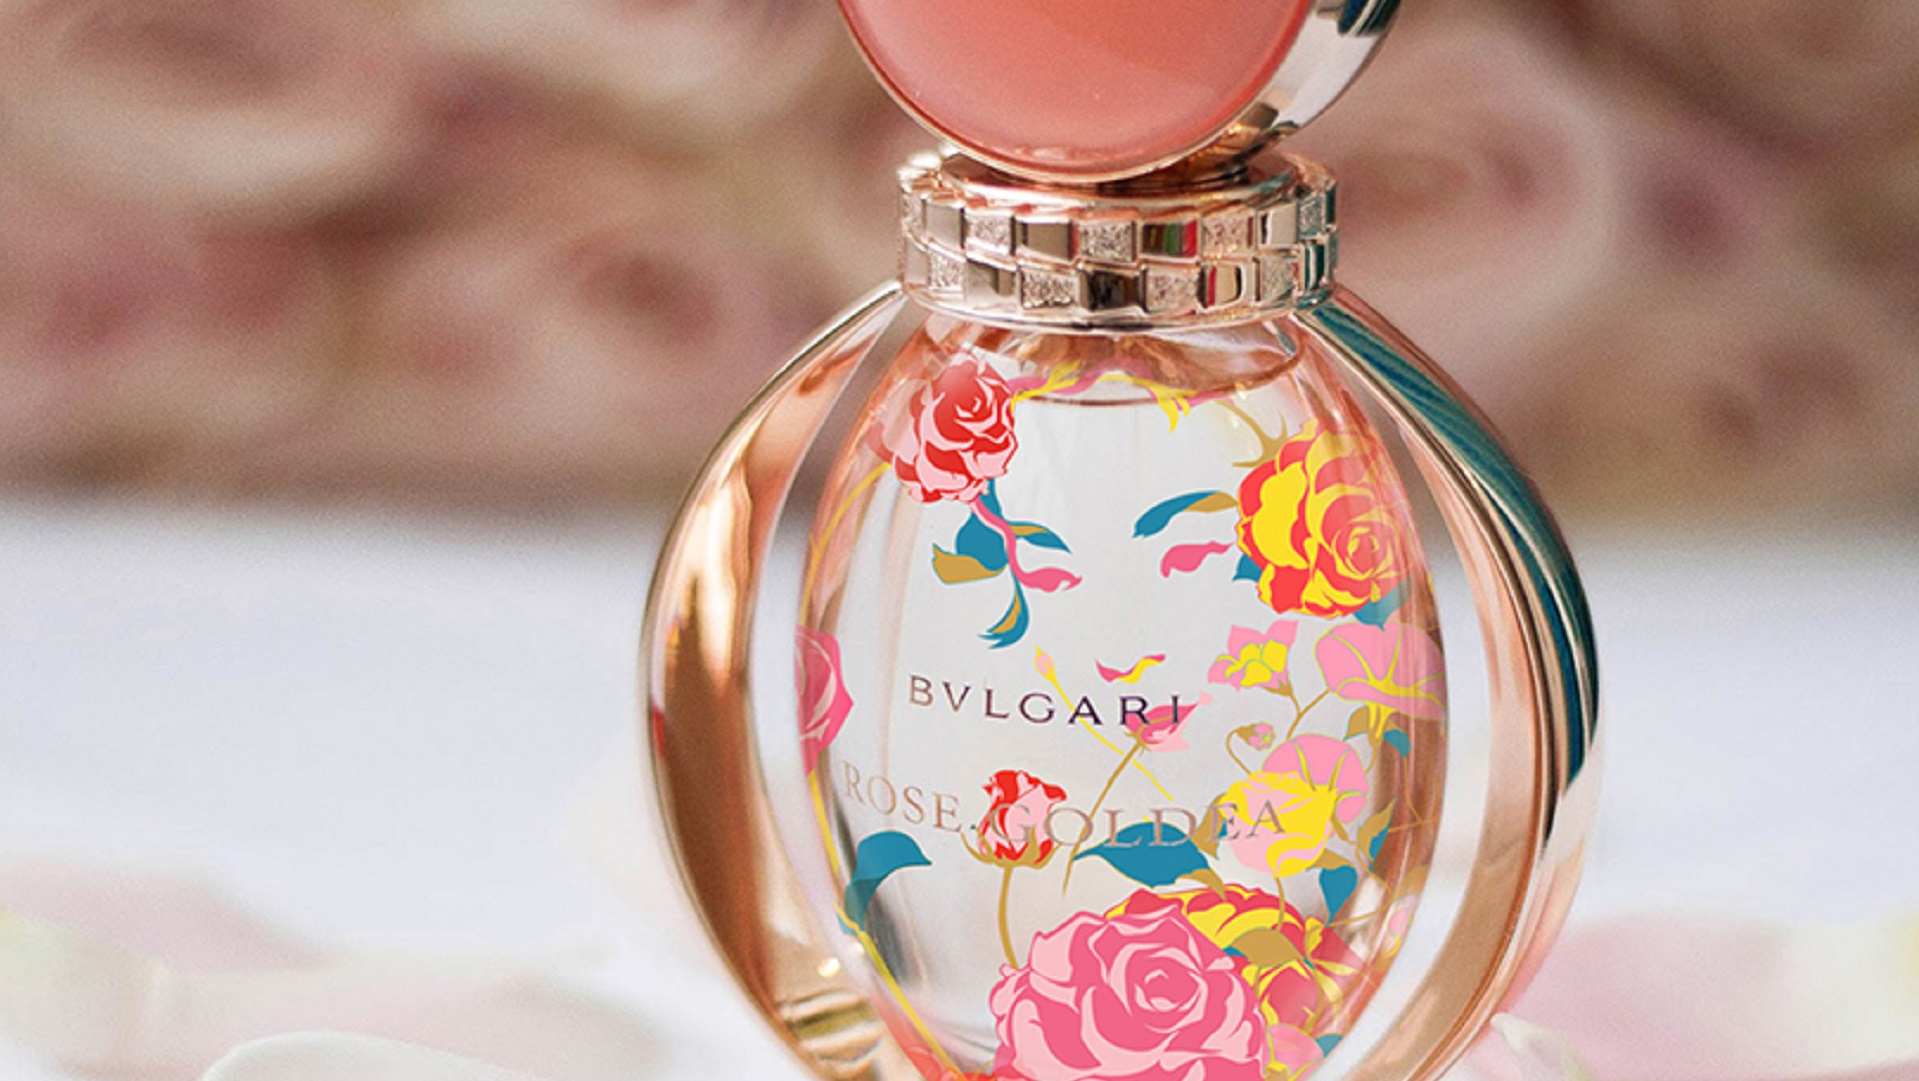 bvlgari-rose-goldea-limited-edition-flacon-detail